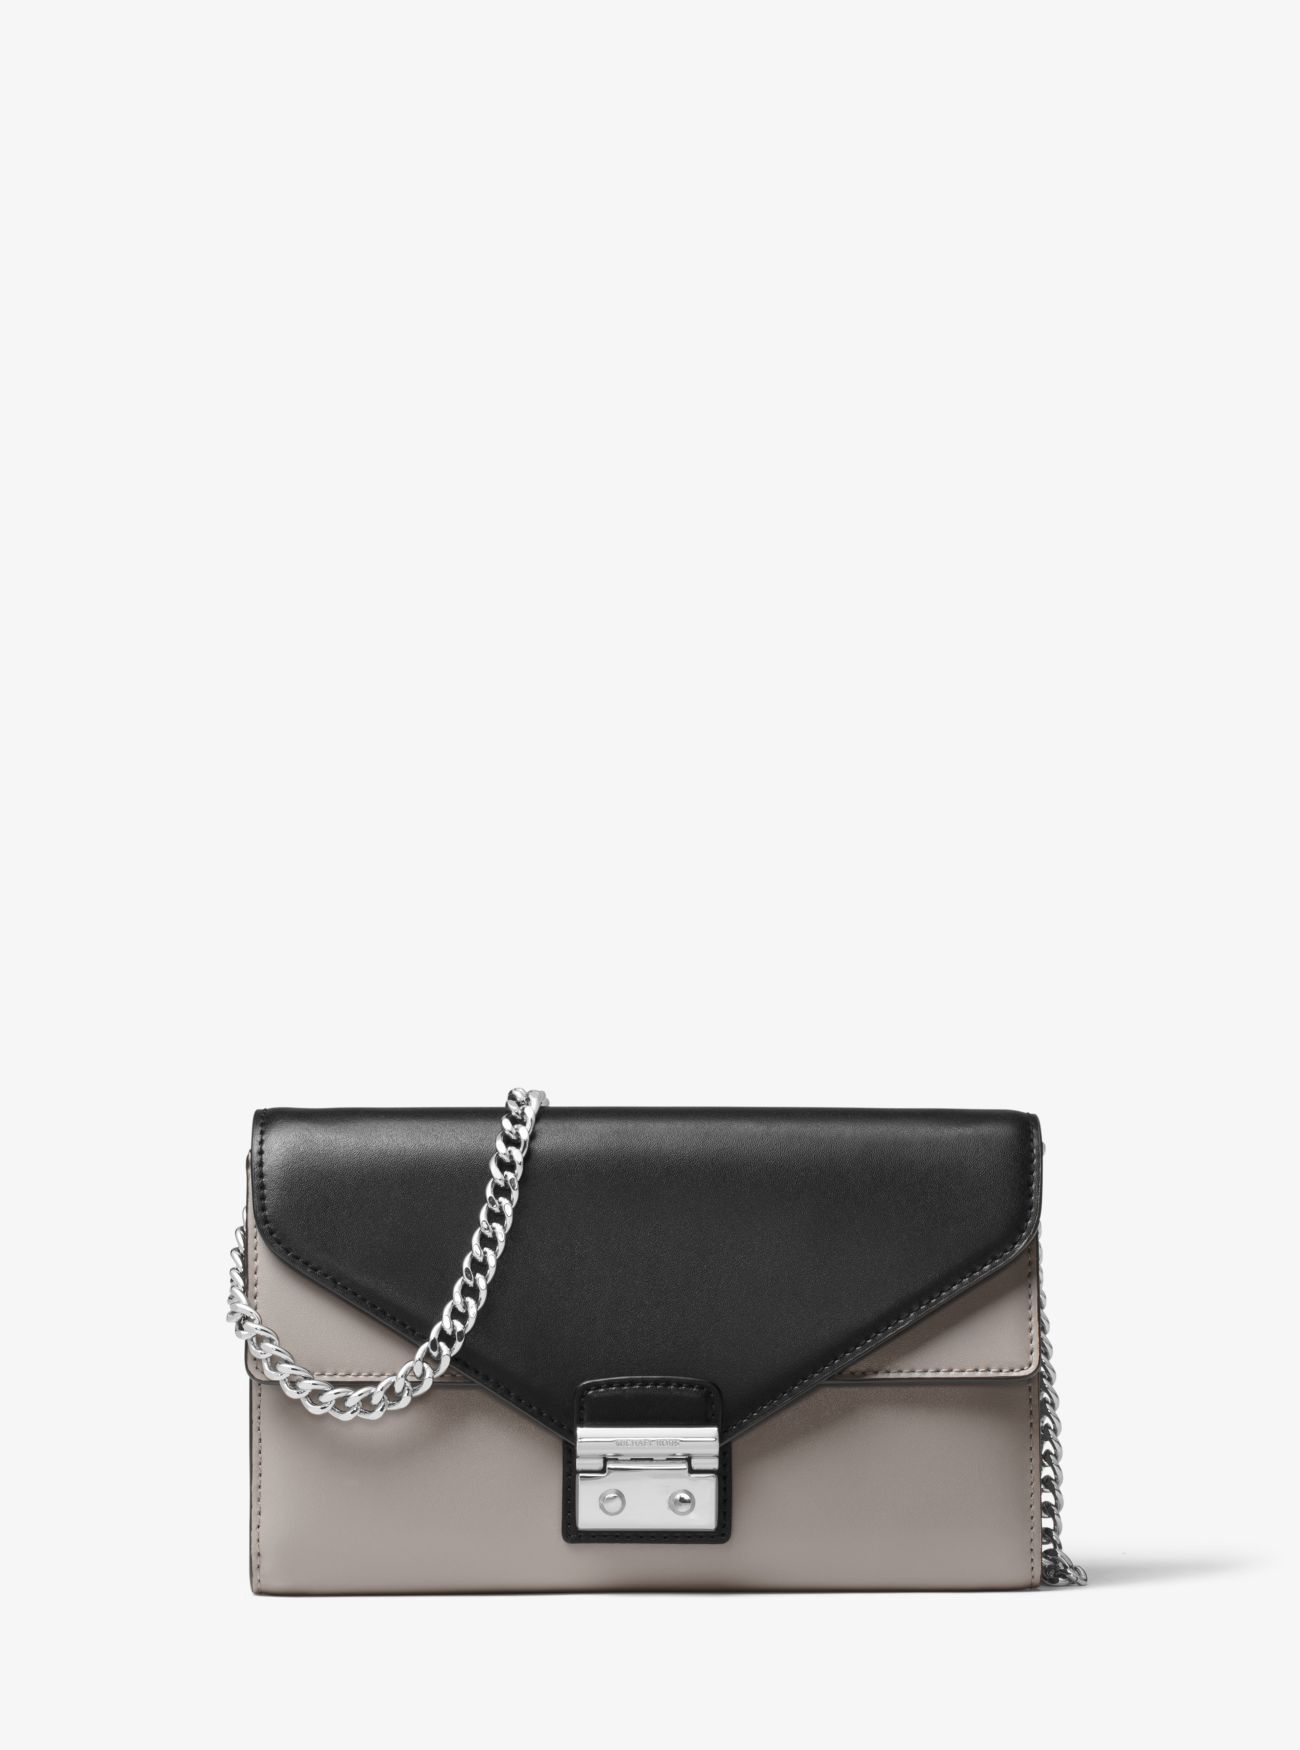 bb332fb03a92f MICHAEL KORS Sloan Color-Block Leather Chain Wallet.  michaelkors ...